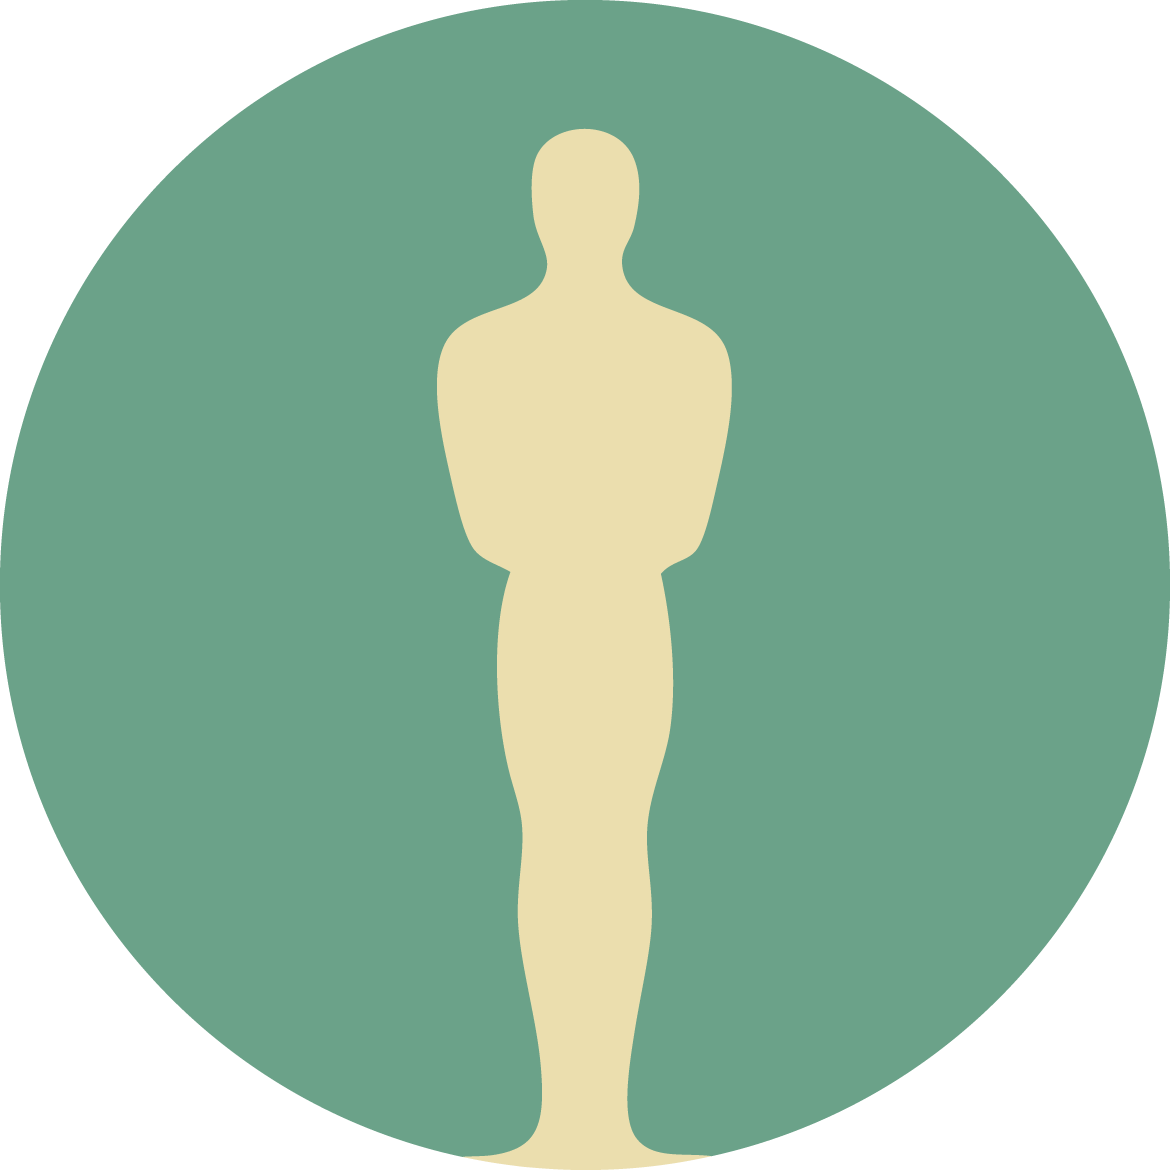 Academy Award - Best Picture Nominees's icon